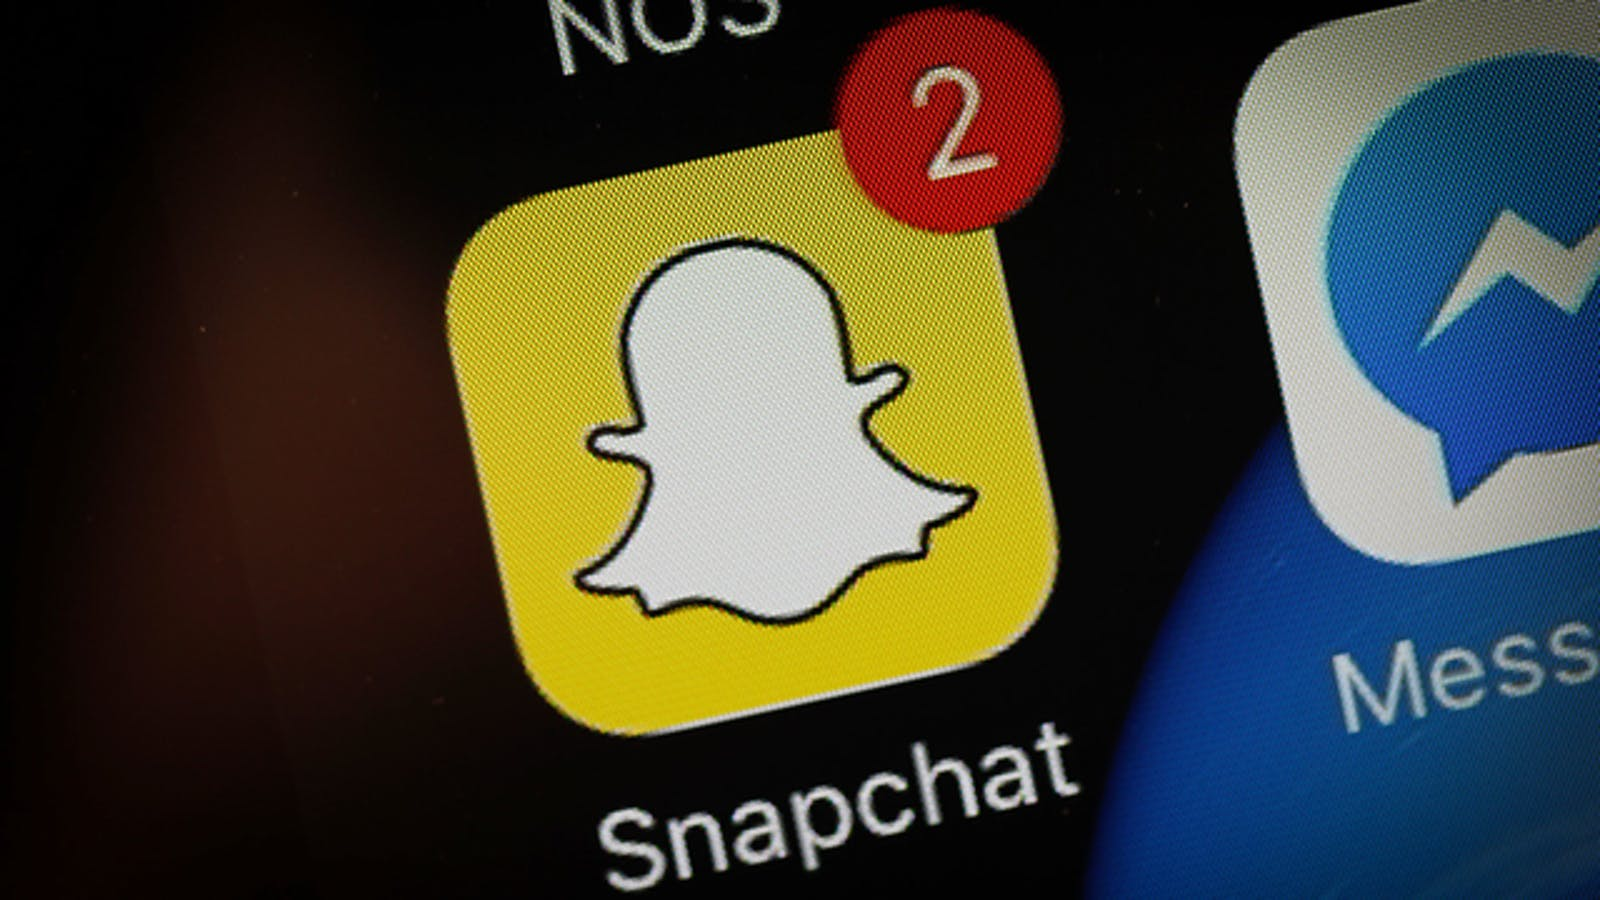 Snapchat app is seen on an iPhone. Photo by AP